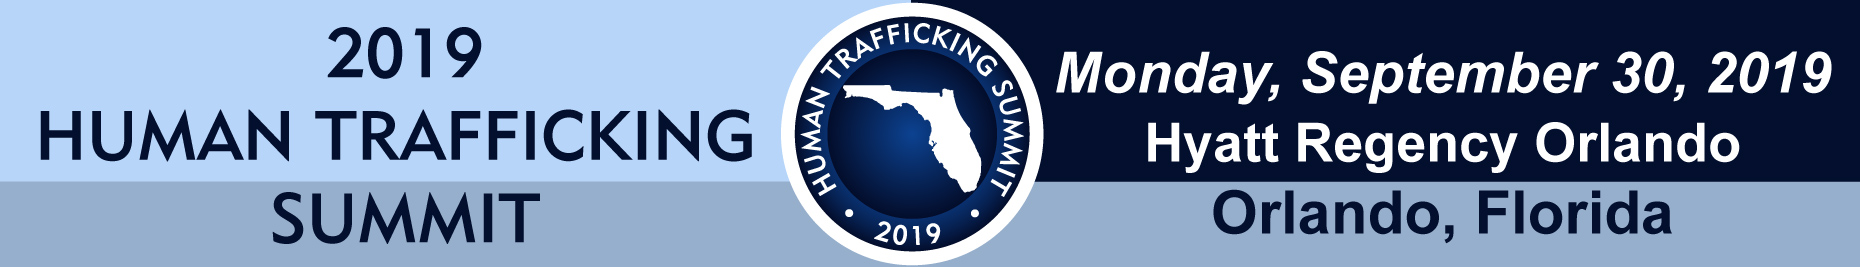 2018 Human Trafficking Summit